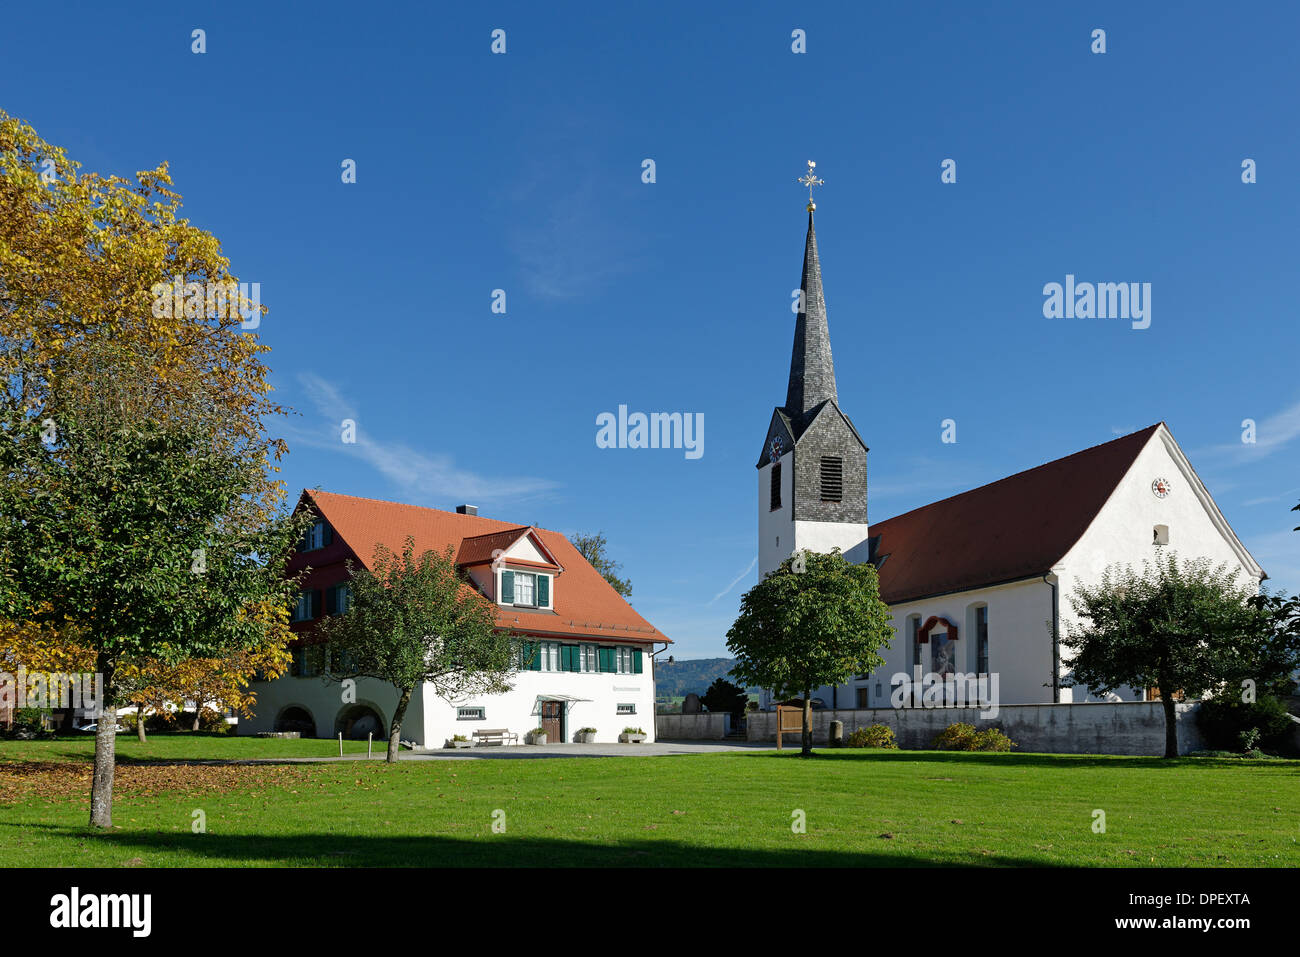 Local history museum and the parish church of St. Ambrose, Hergensweiler, Swabia, Bavaria, Germany, - Stock Image